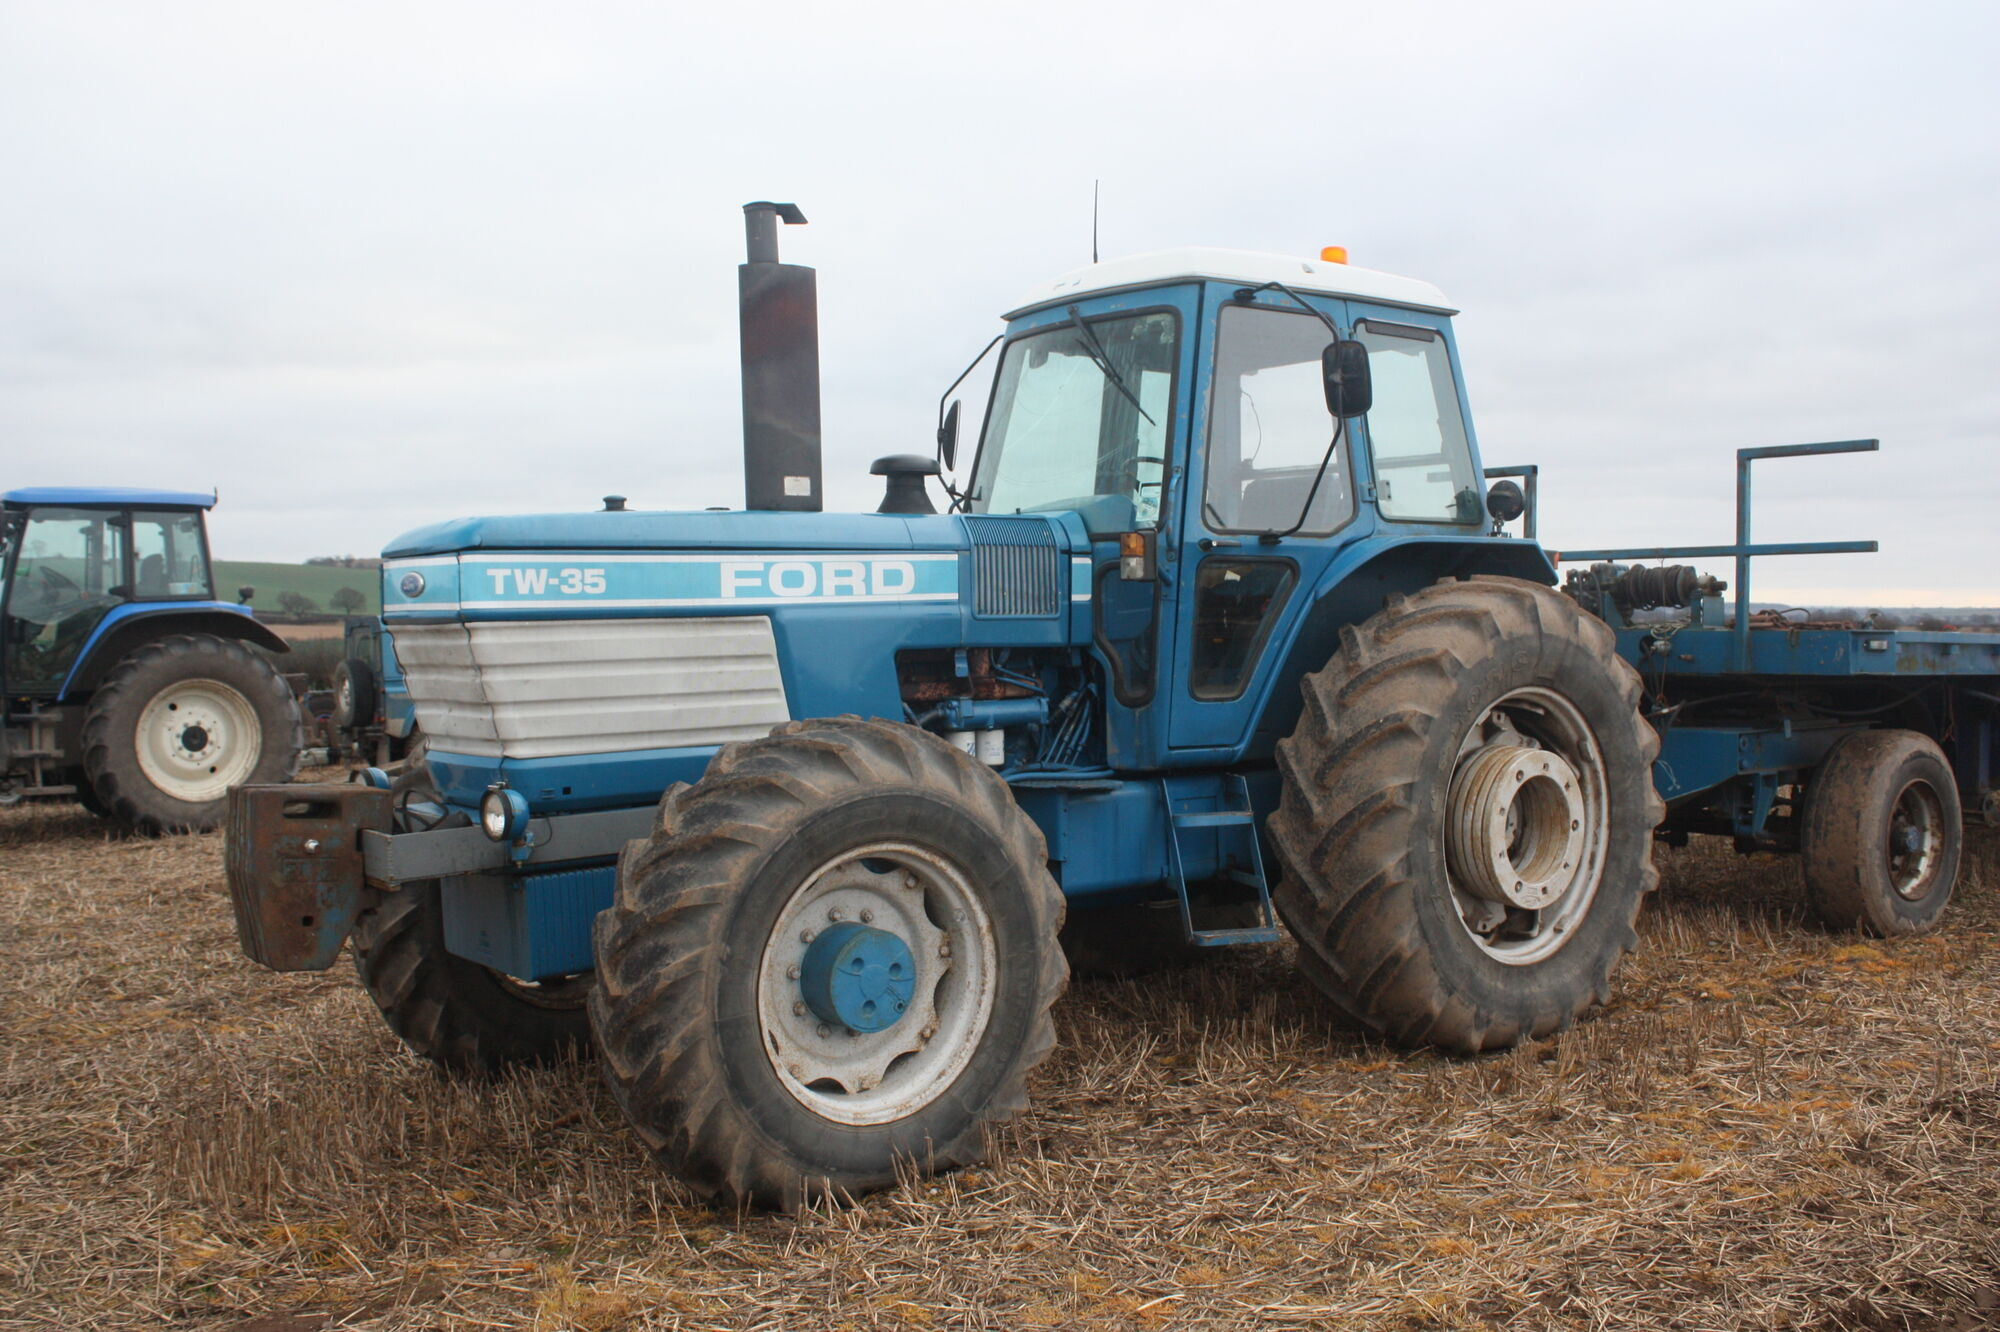 Ford Tw 35 Tractor Construction Plant Wiki Fandom Powered By Wikia 7740 Wiring Harness Kits